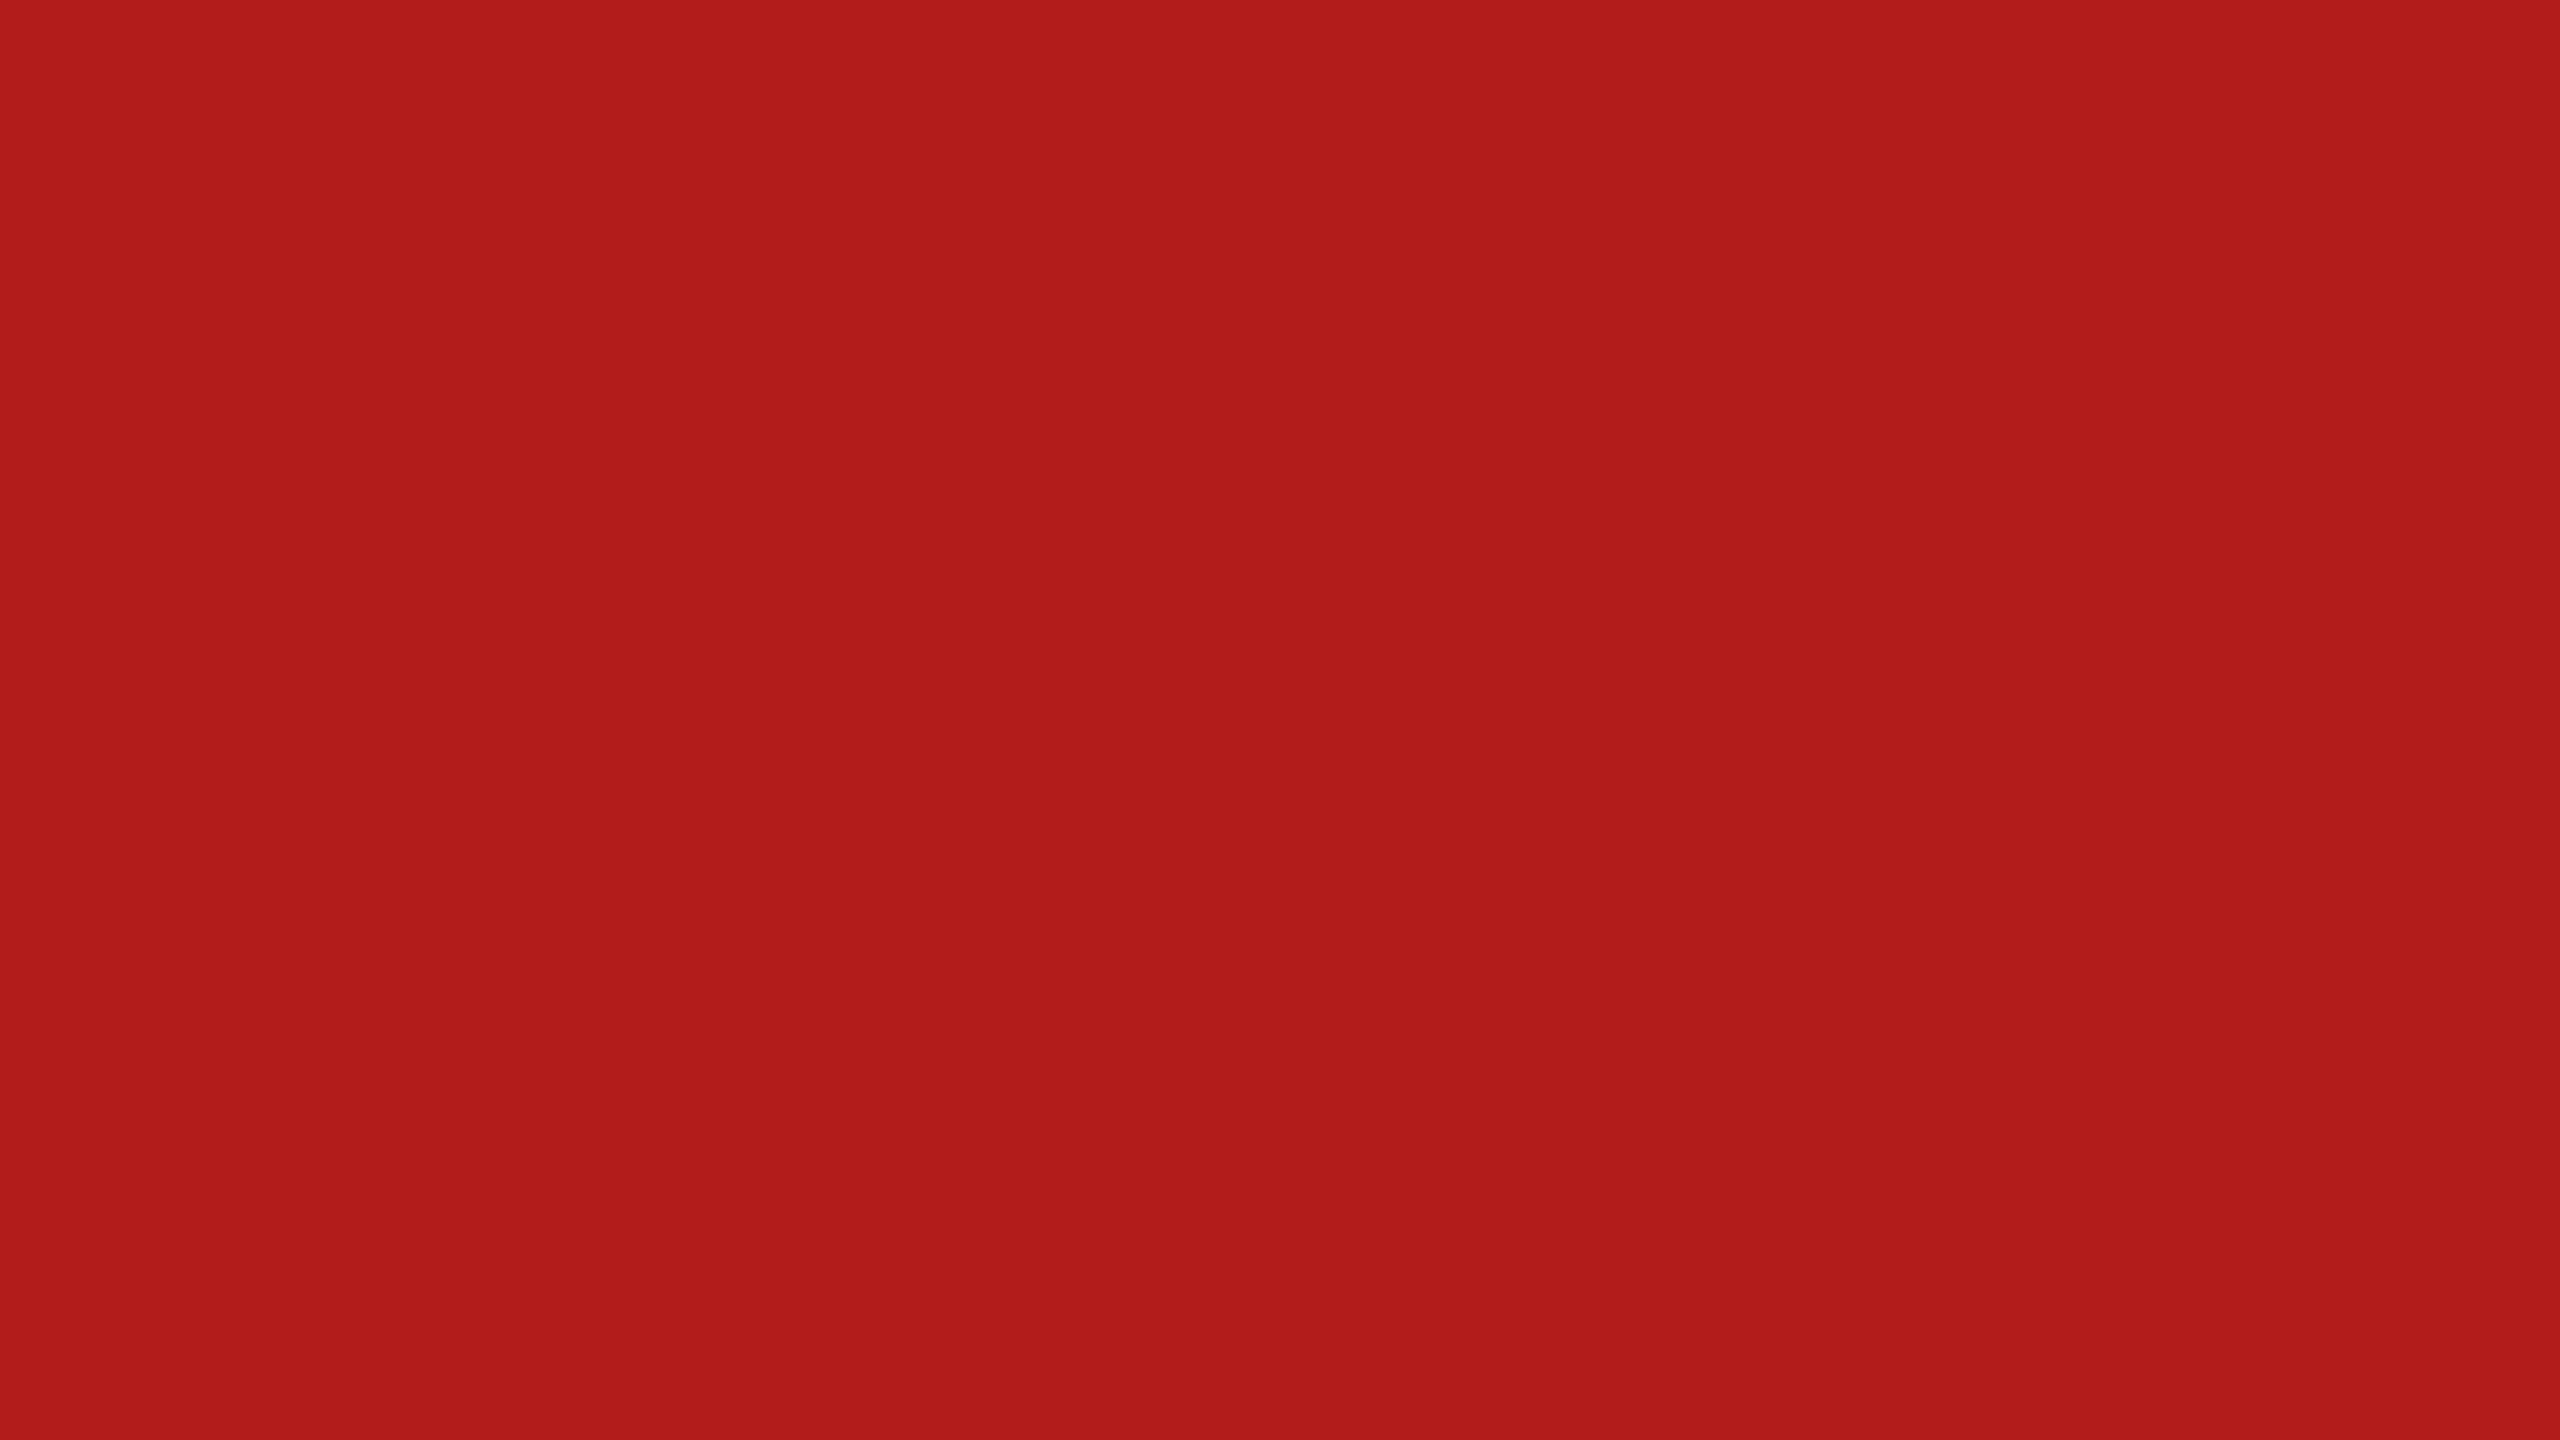 2560x1440 Carnelian Solid Color Background